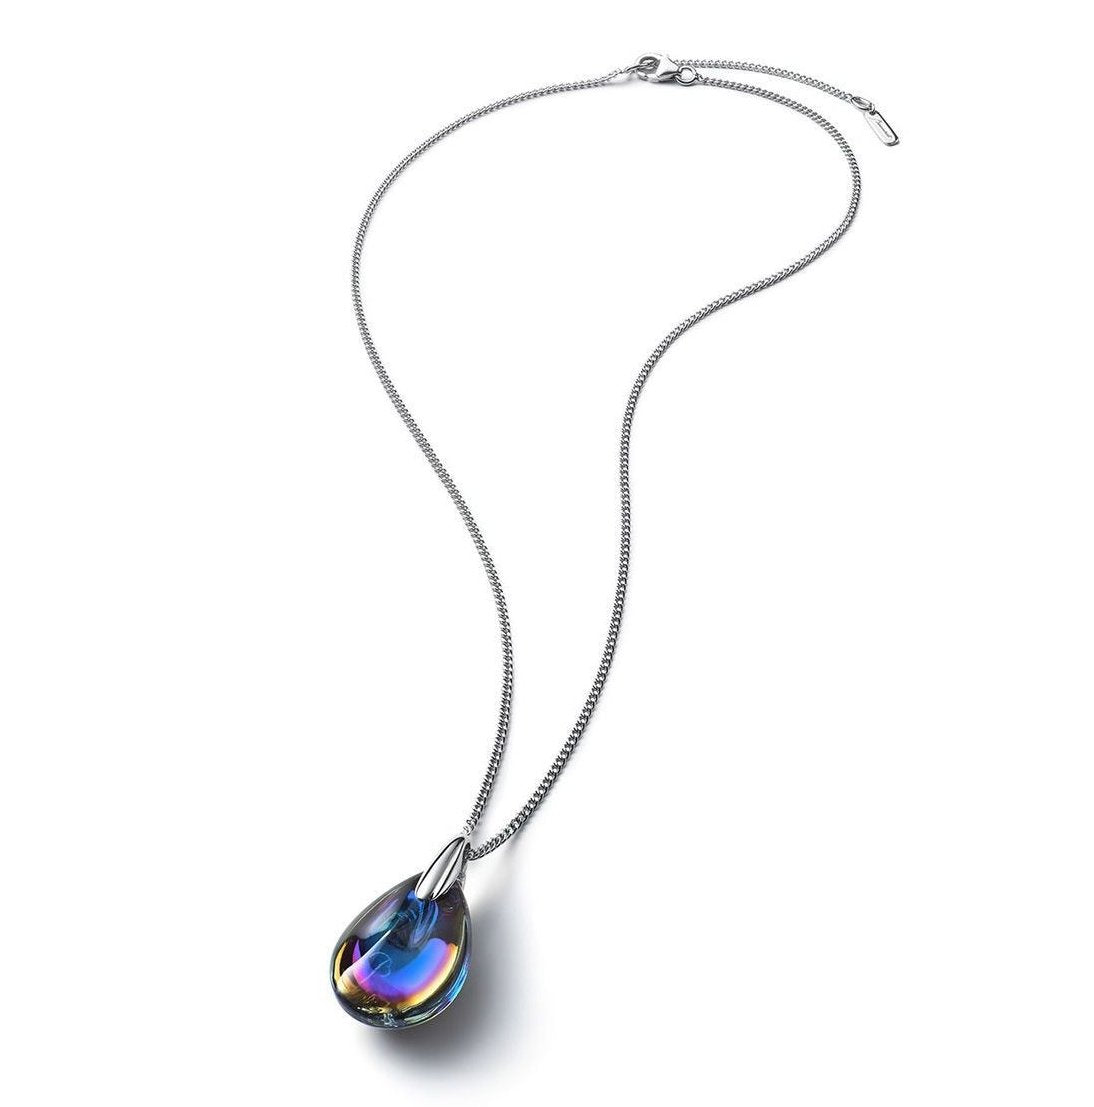 Baccarat Small Psydelic Scarabee Silver Necklace - Andrew Scott